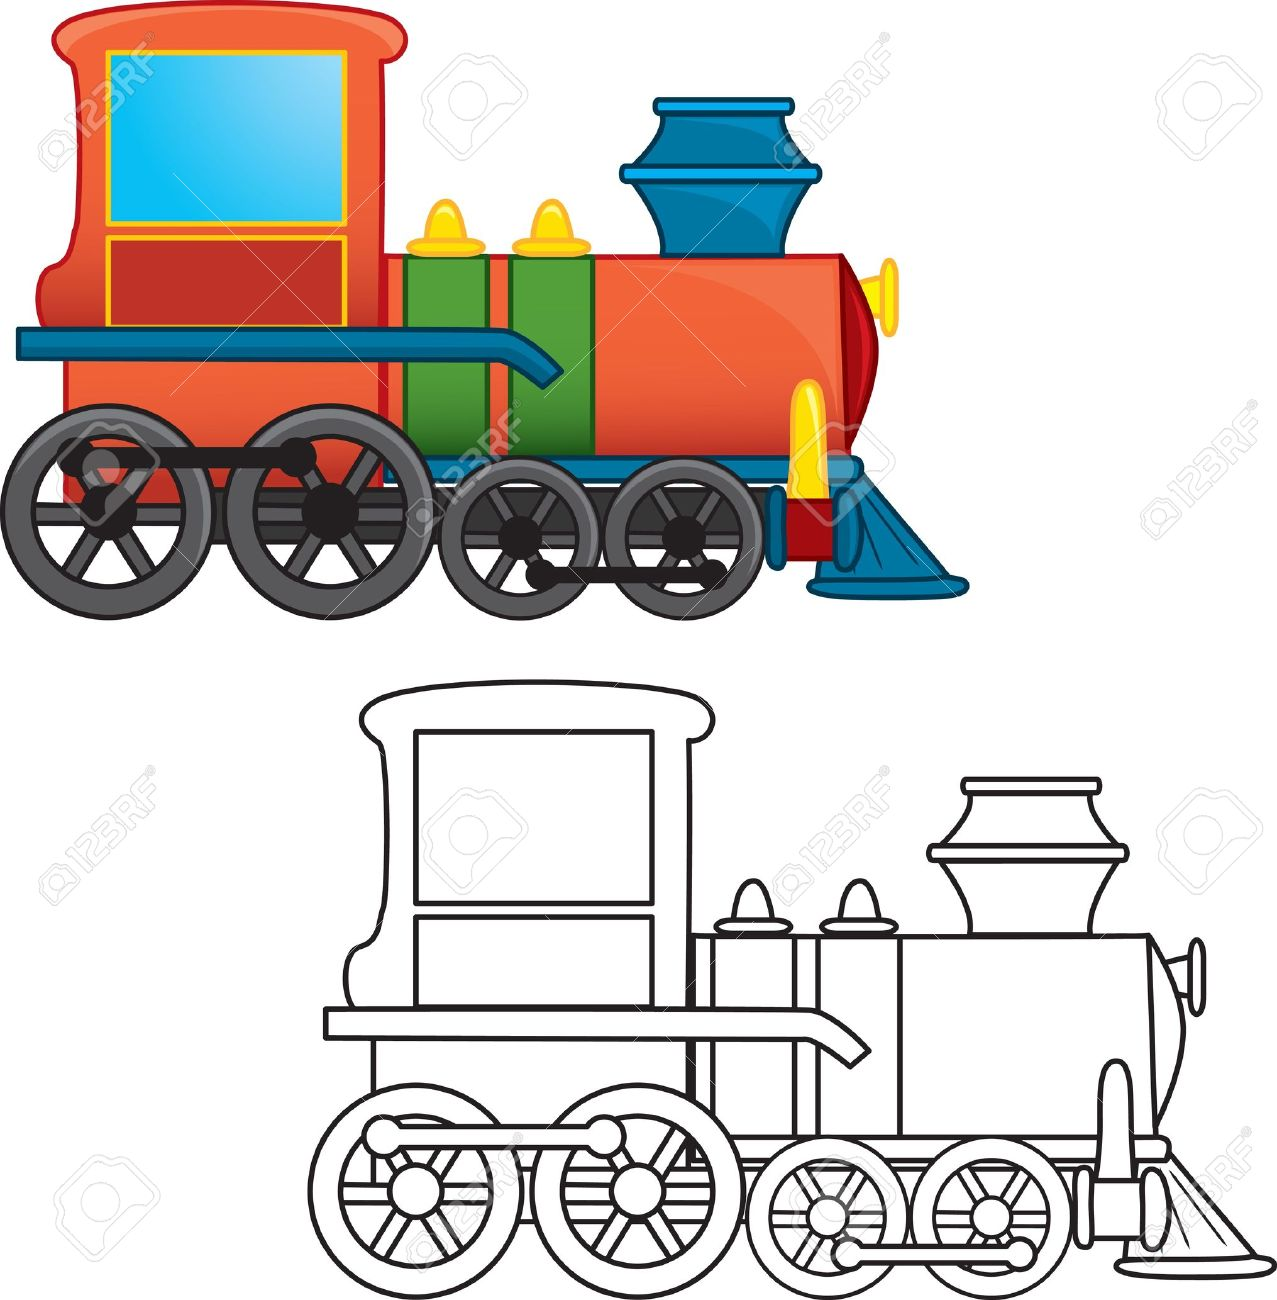 Train Toy Coloring Book Royalty Free Cliparts, Vectors, And Stock ...